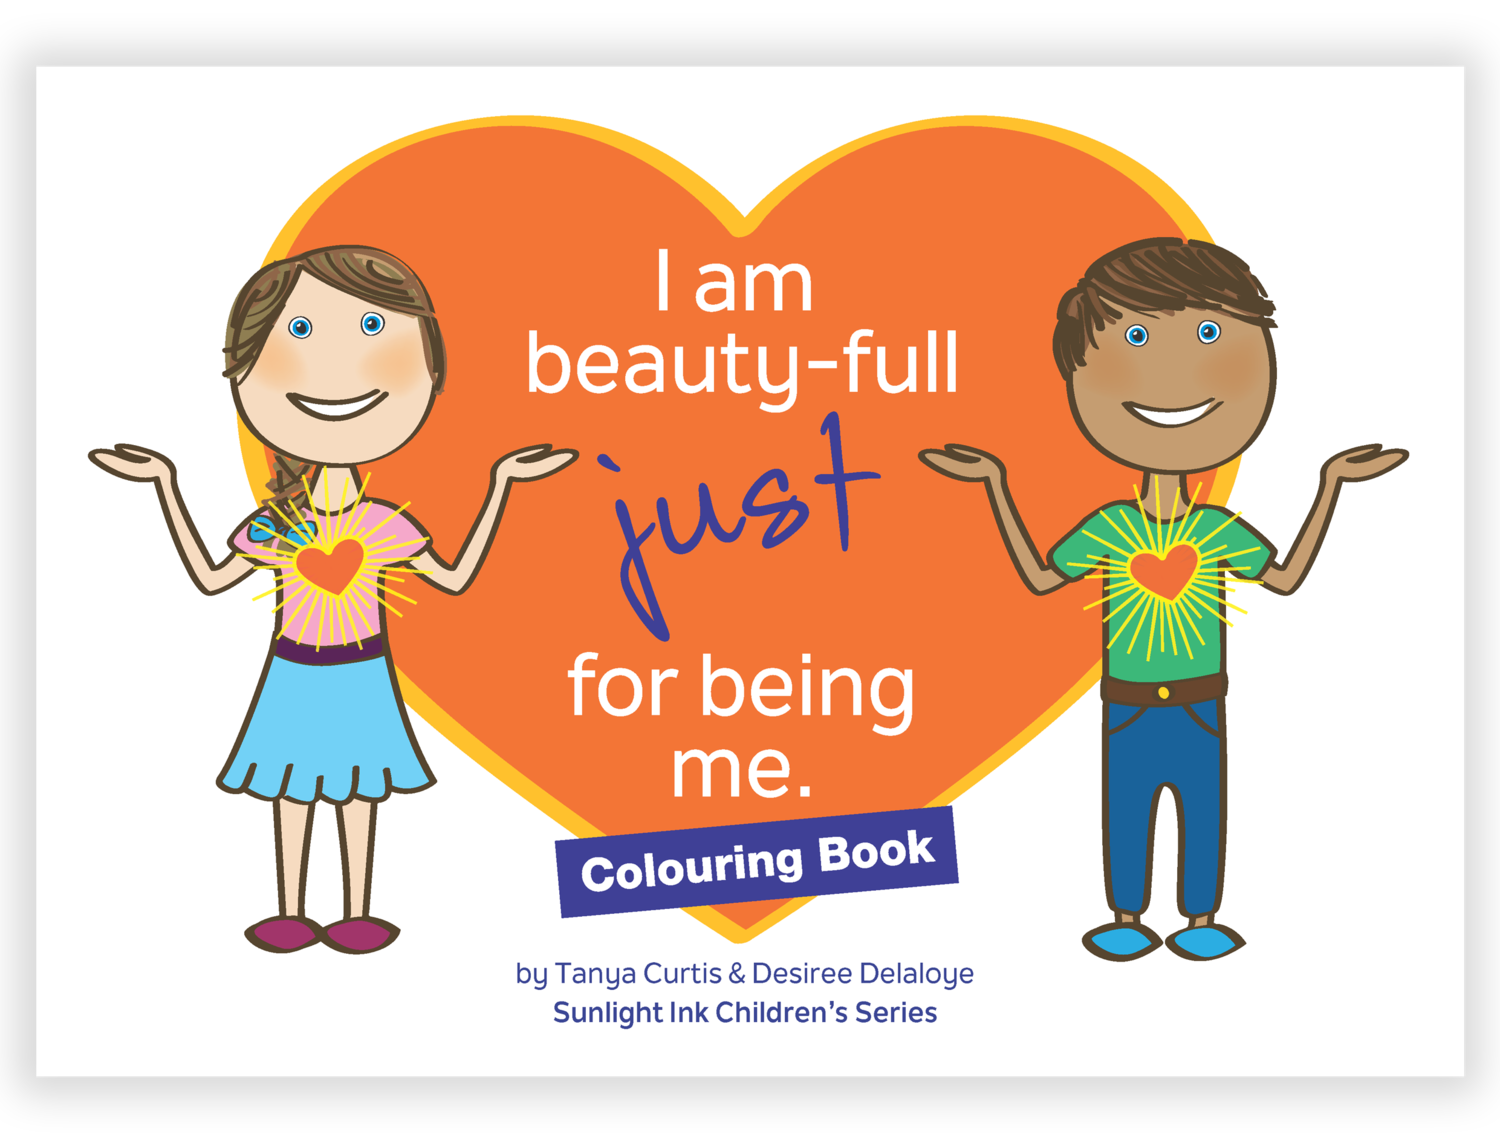 Creative Colouring Book - I Am Beauty-Full Just for Being Me